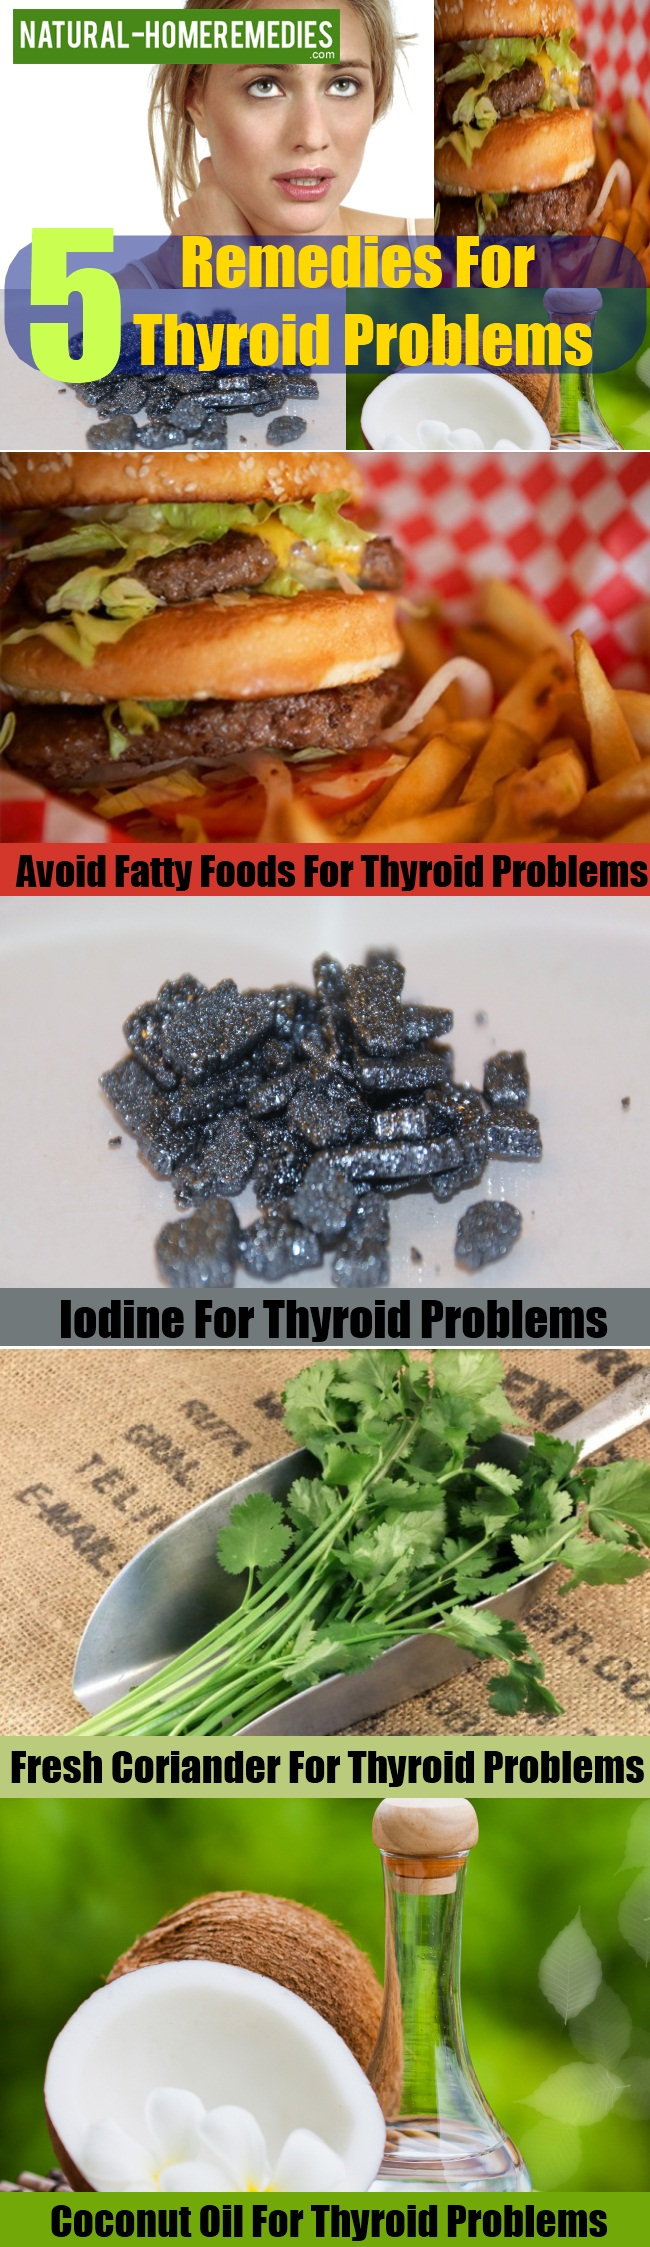 Remedies For Thyroid Problems